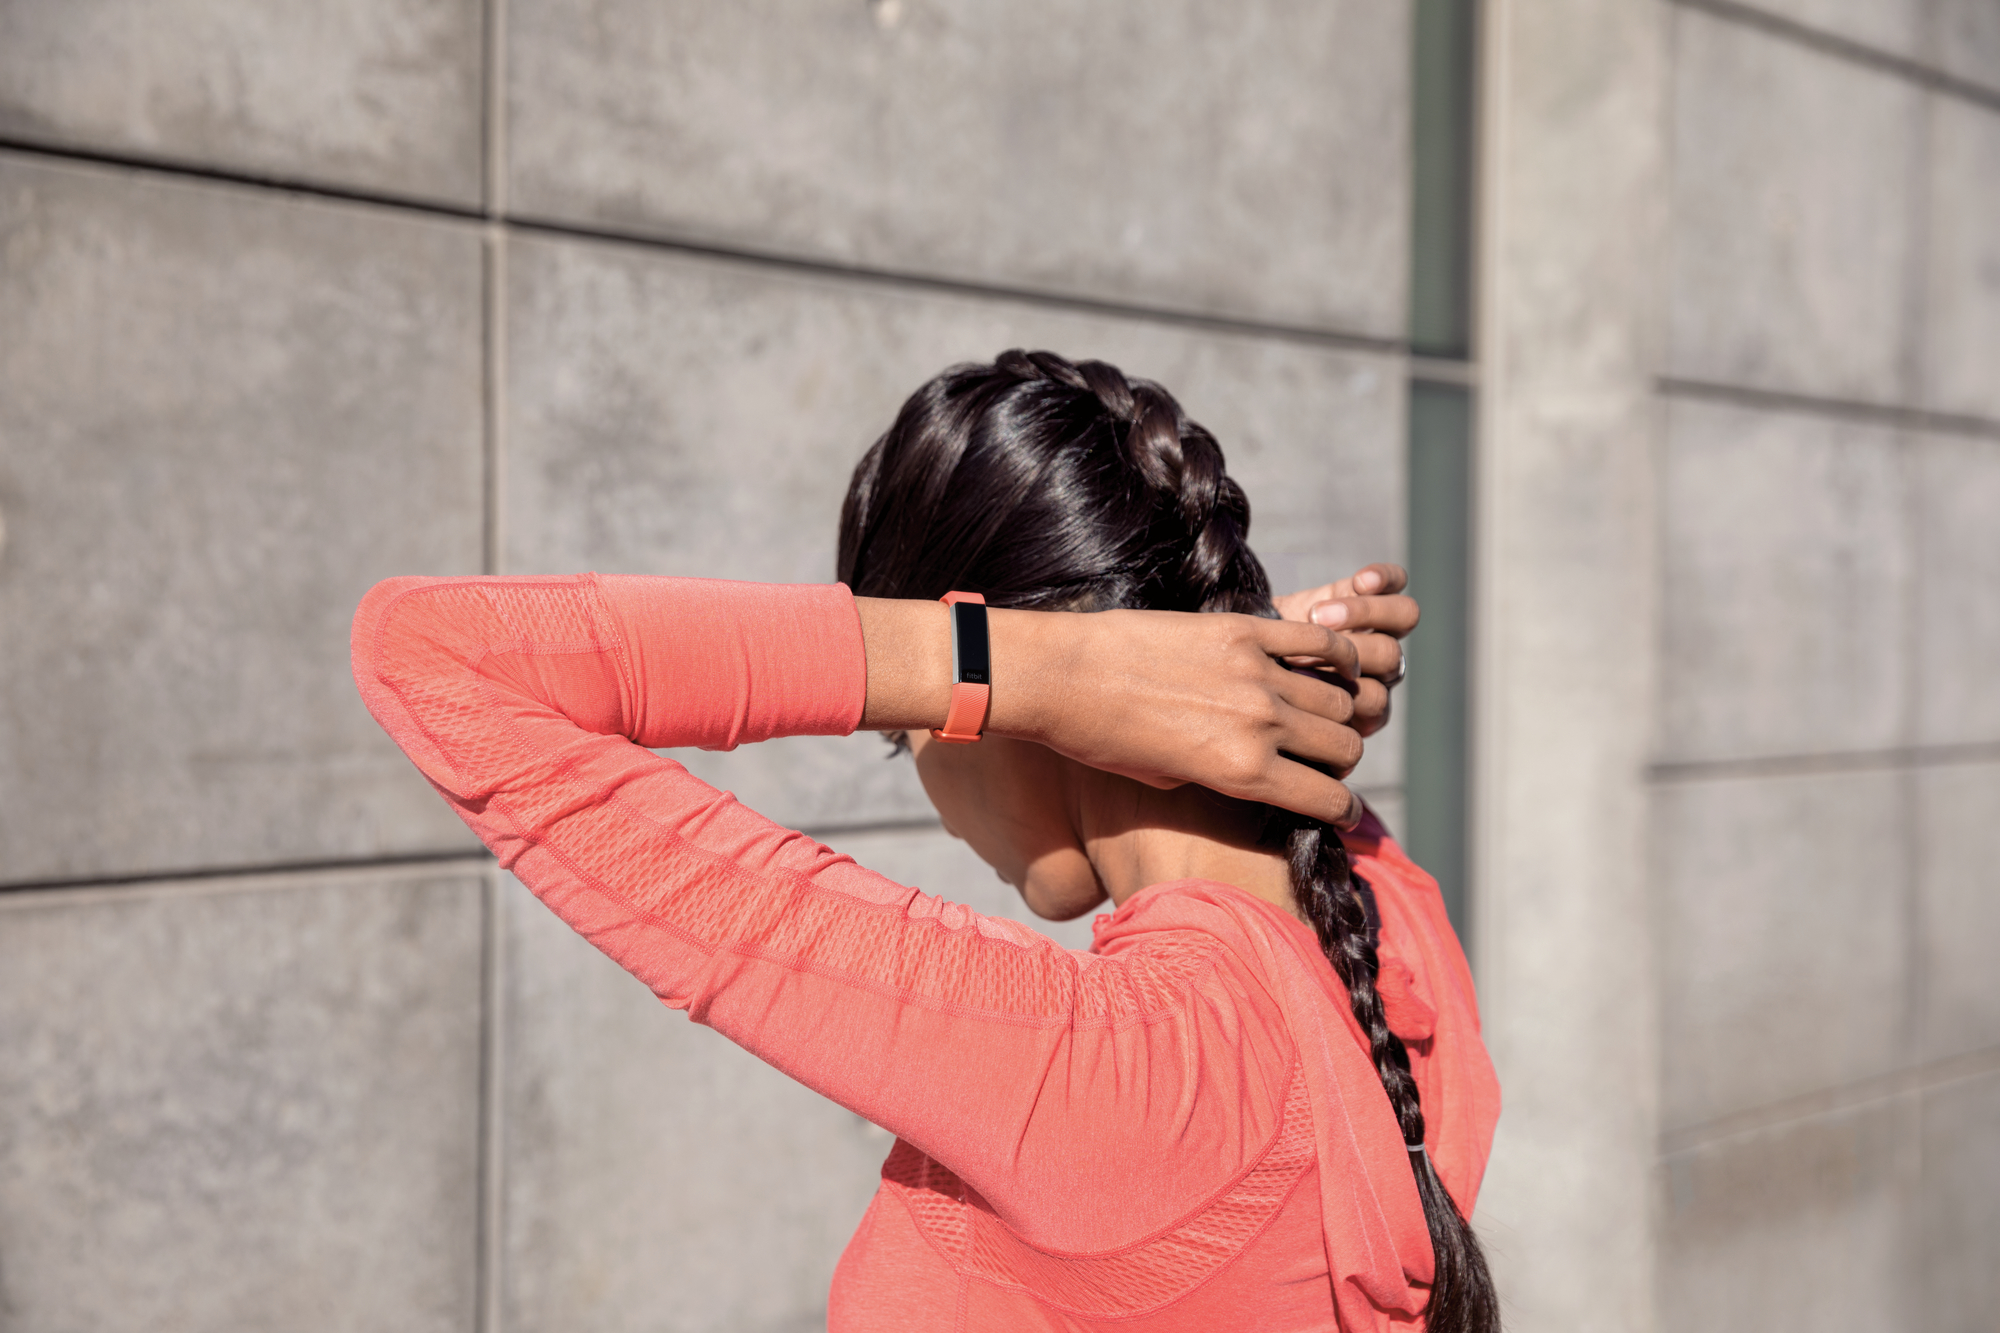 fitbit 39 s new alta hr activity tracker brings a heart rate monitoring update to the original. Black Bedroom Furniture Sets. Home Design Ideas